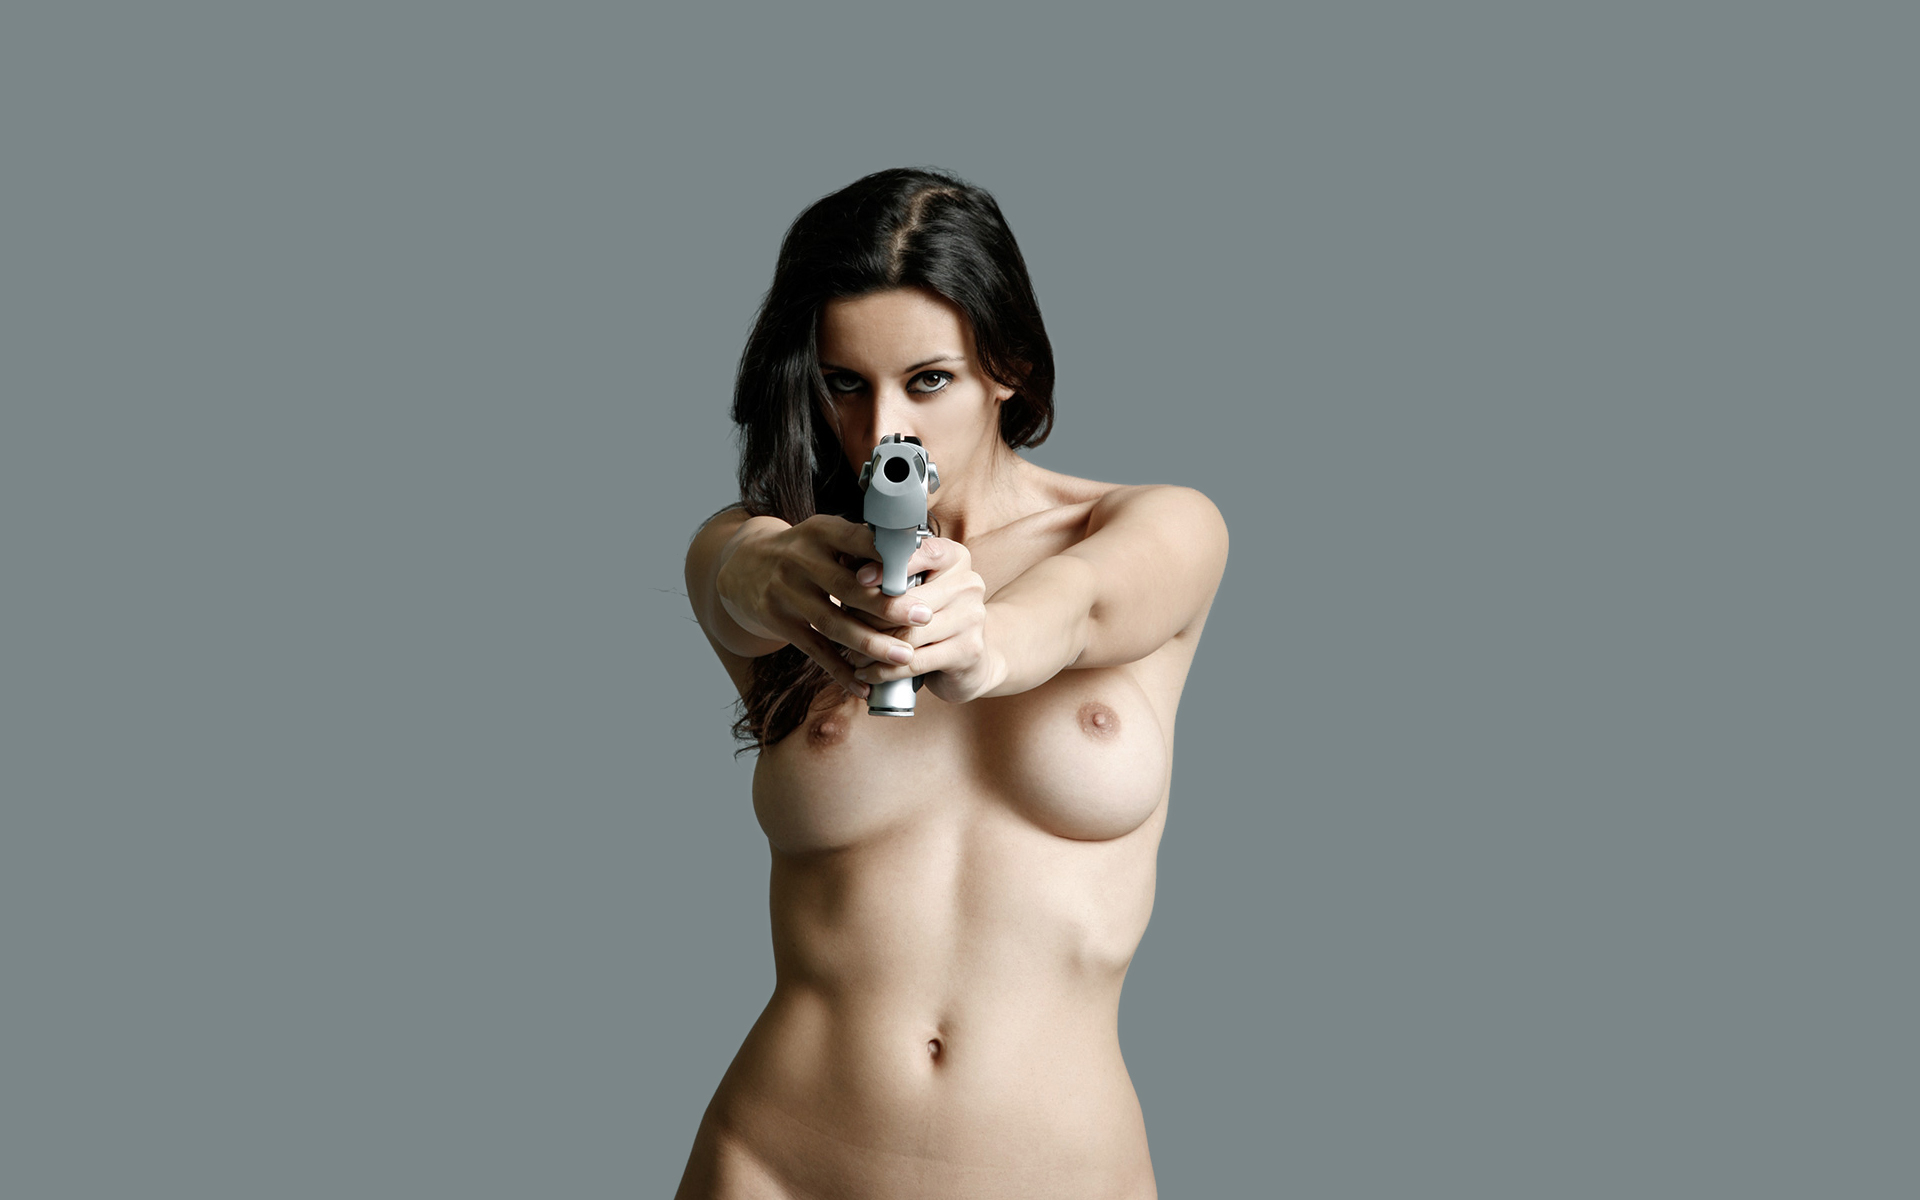 Naked girls with guns pictures fucked photo